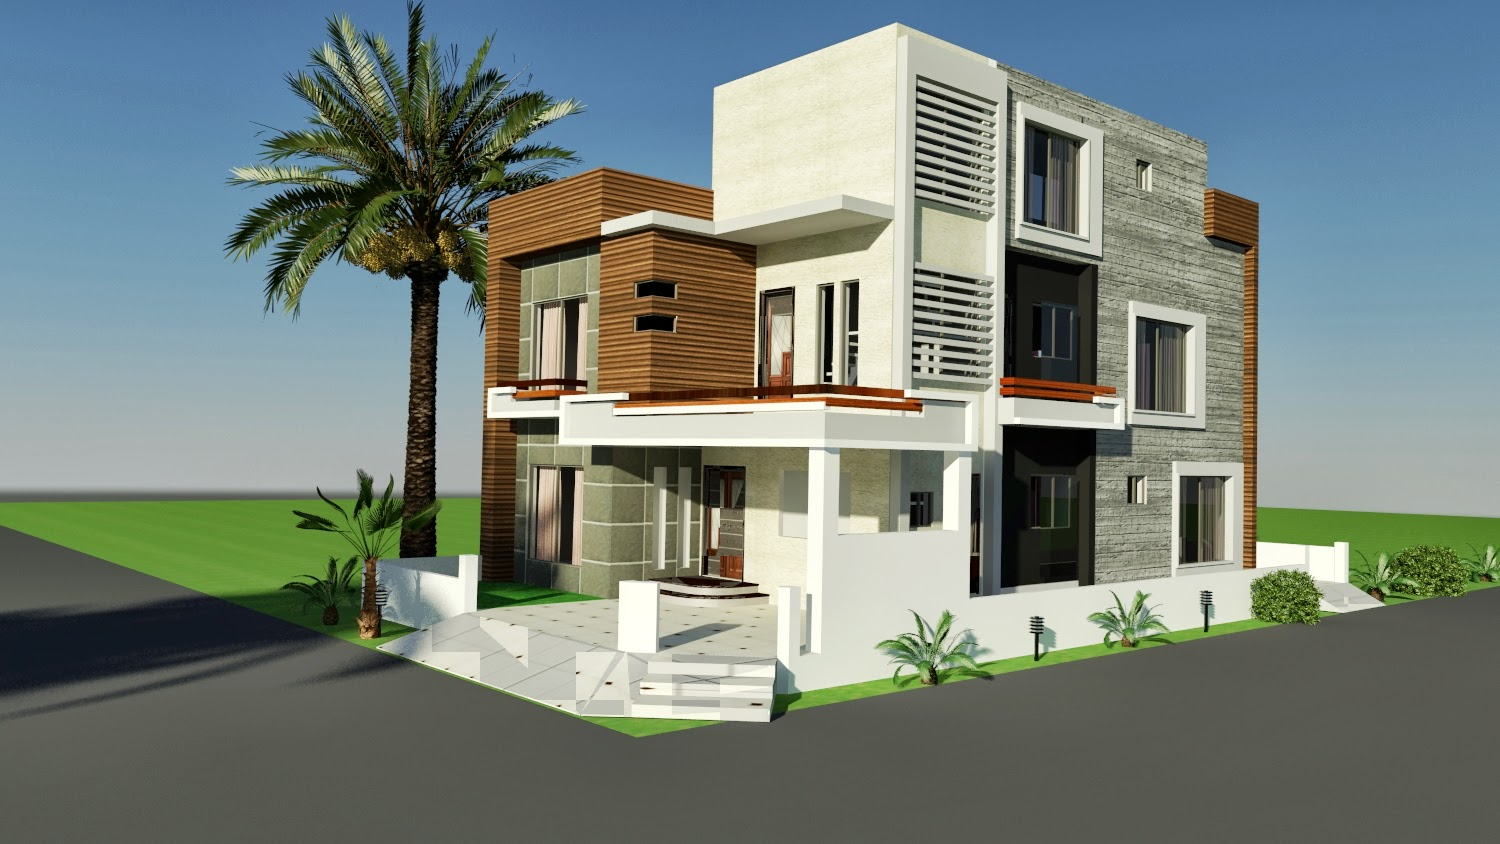 Home Design Ideas Architecture: 3D Front Elevation.com: 10 MARLA CORNER HOUSE PLAN DESIGN